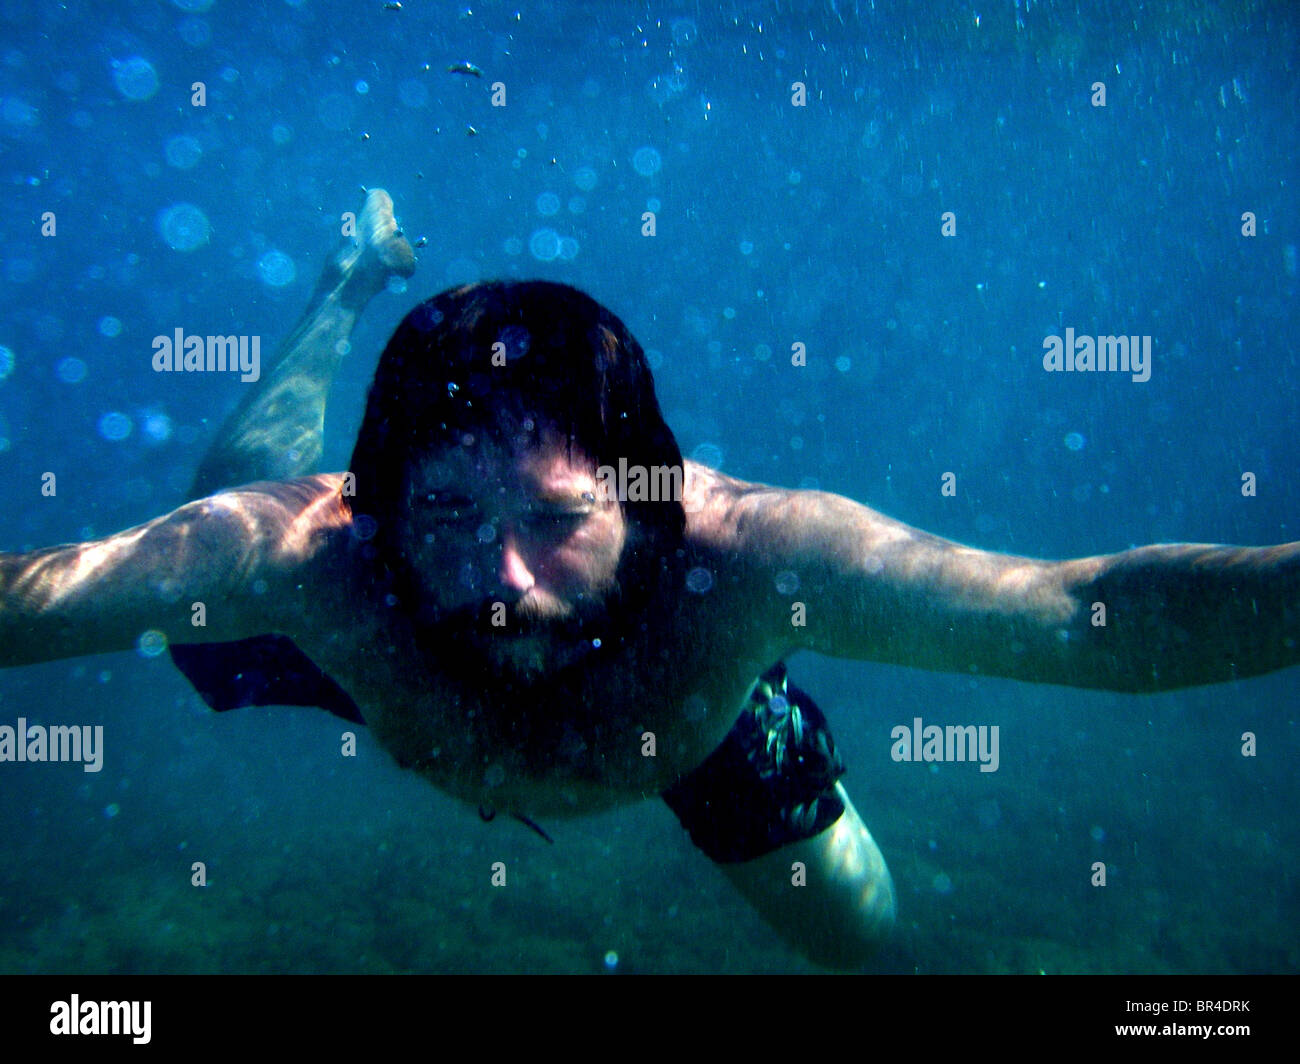 A man floats underwater at Halona Beach Cove in Hawaii. - Stock Image